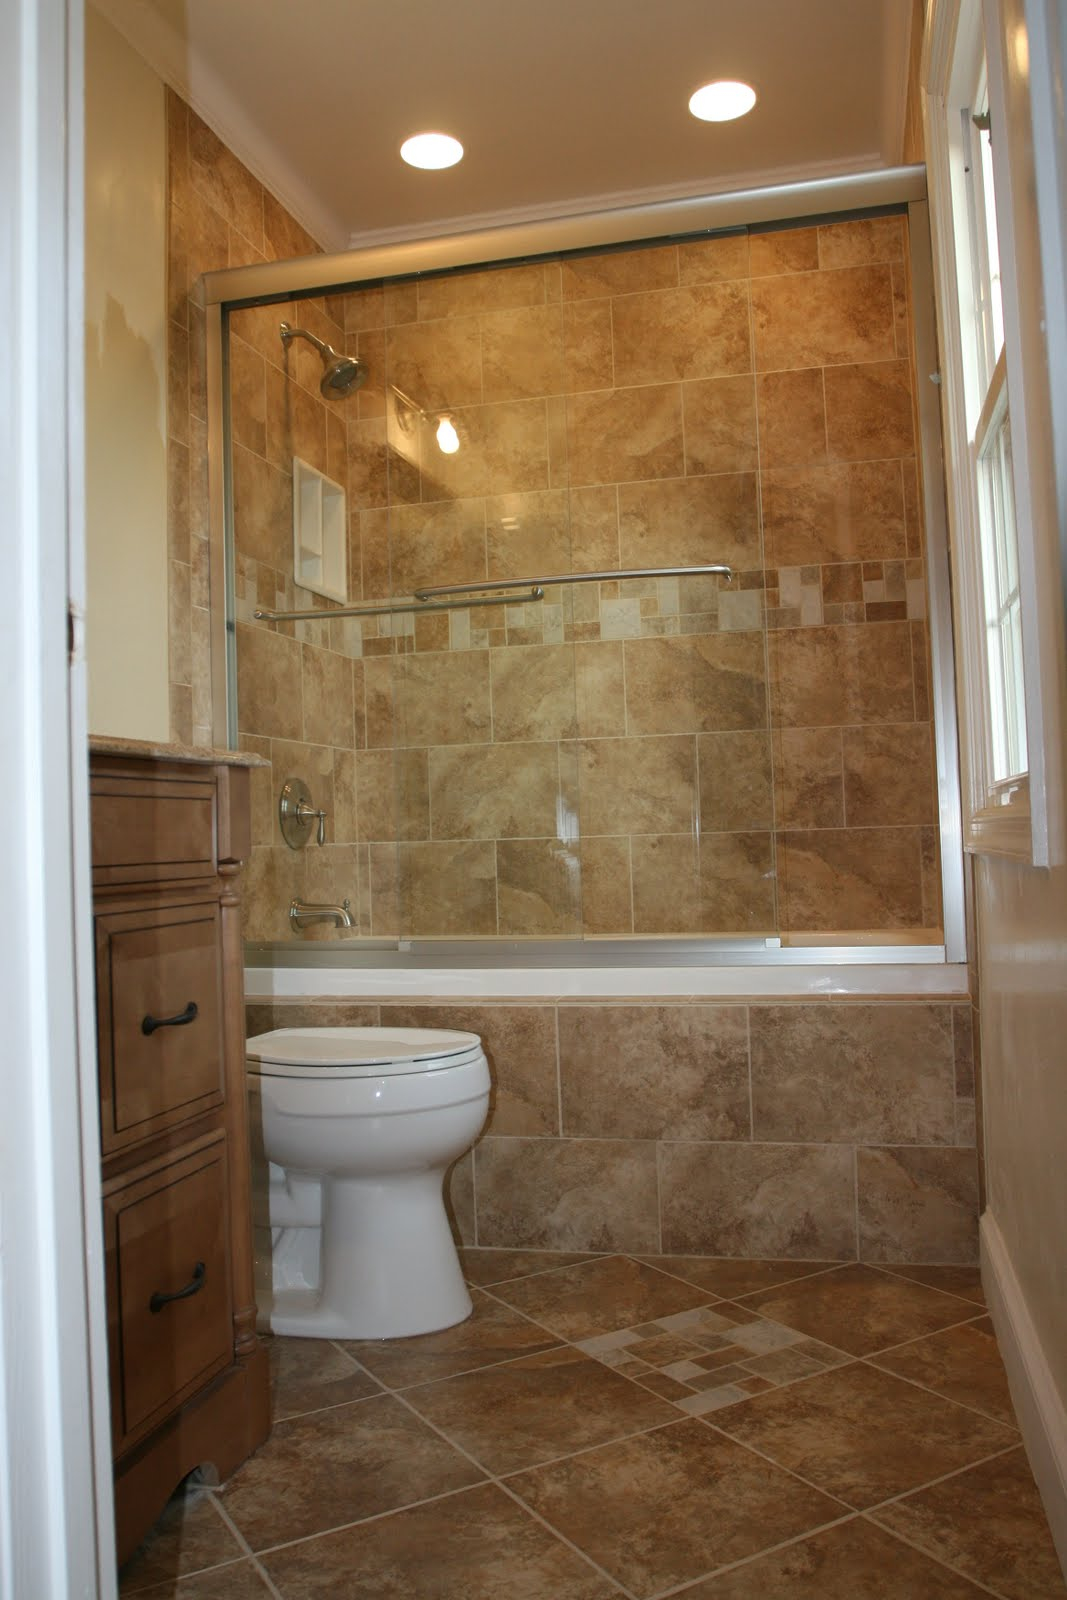 Bathroom remodeling design ideas tile shower niches for Bathroom tiles ideas for small bathrooms